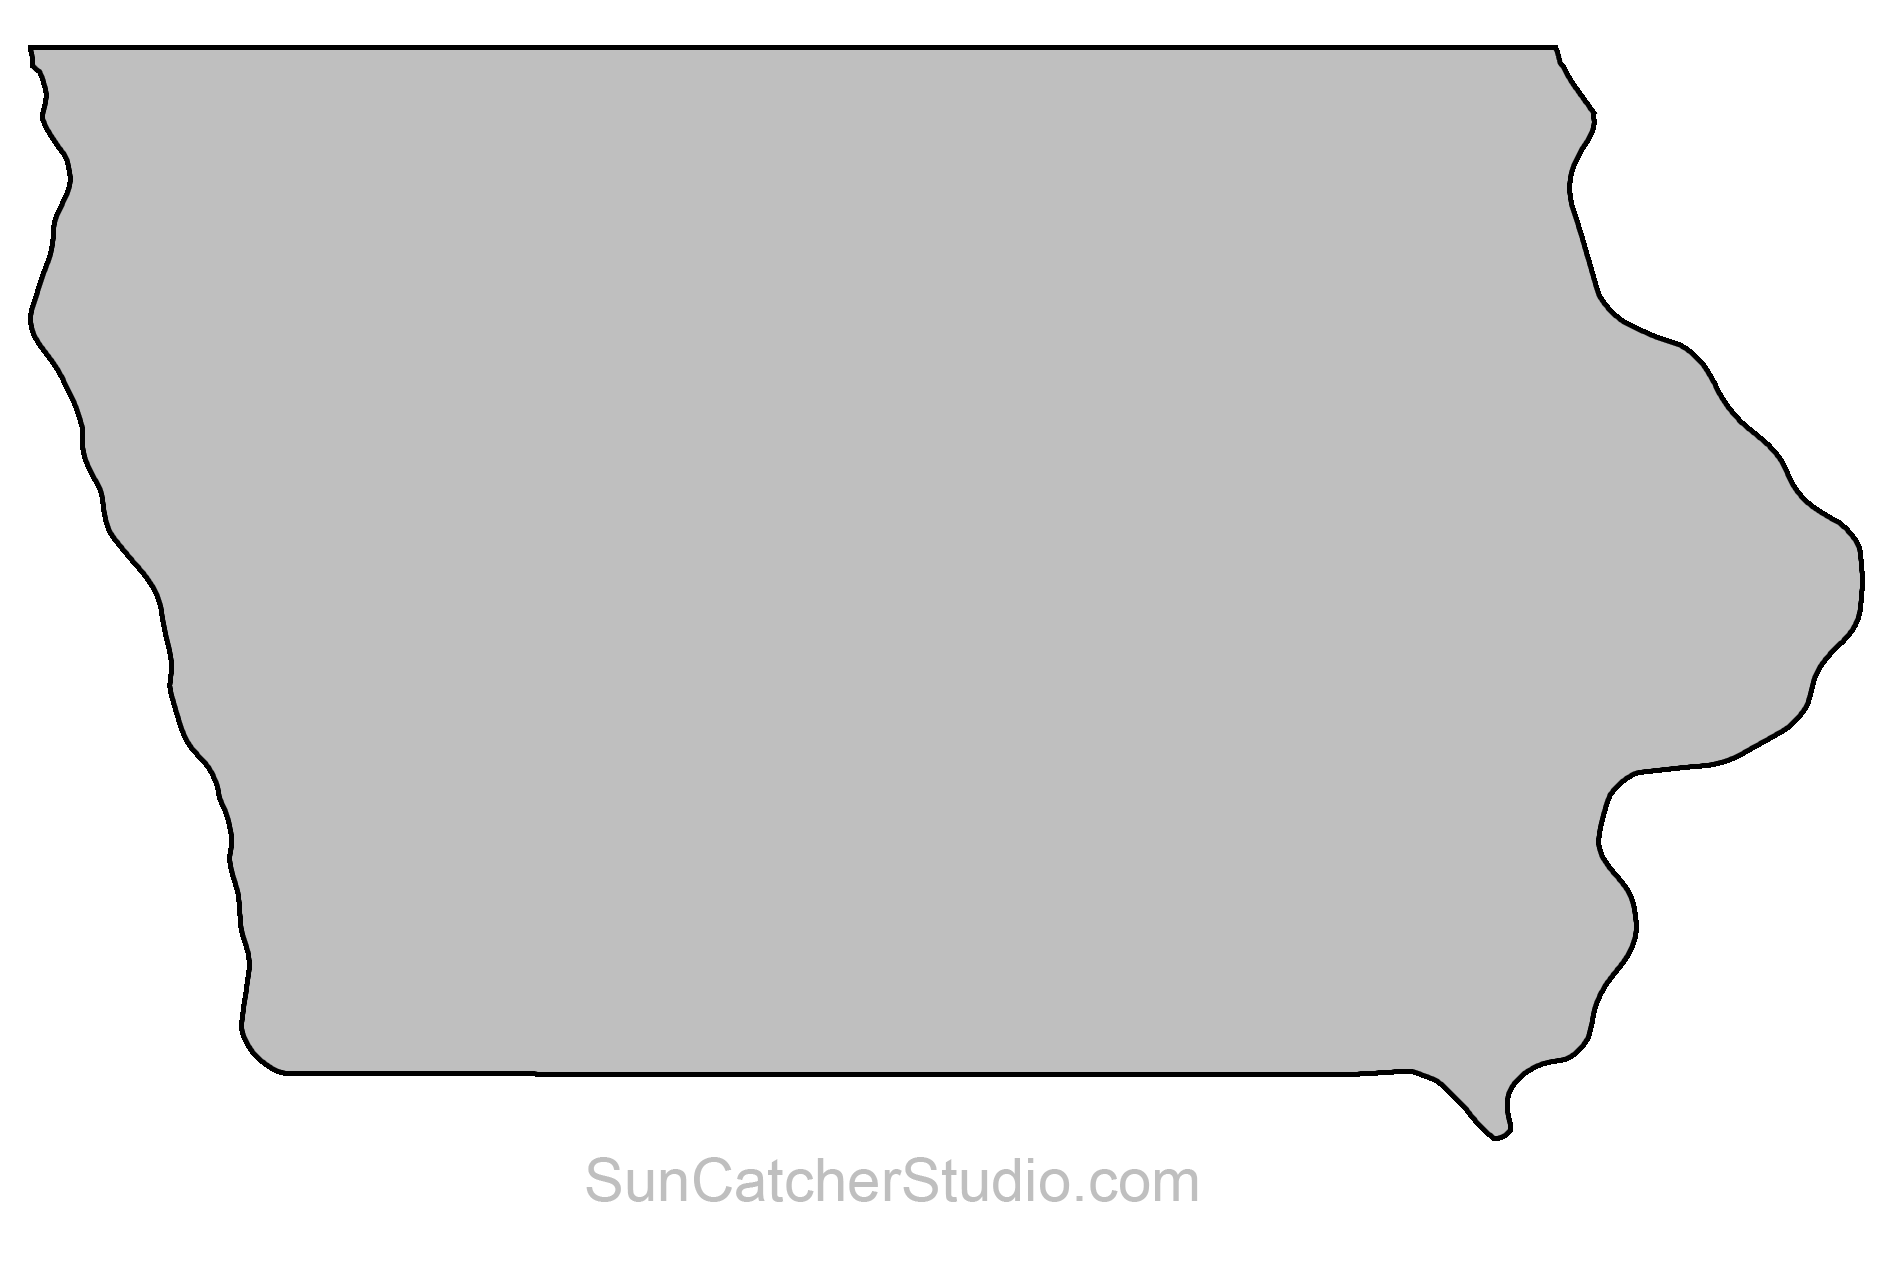 jpg royalty free library State outlines maps stencils. Michigan clipart pattern.